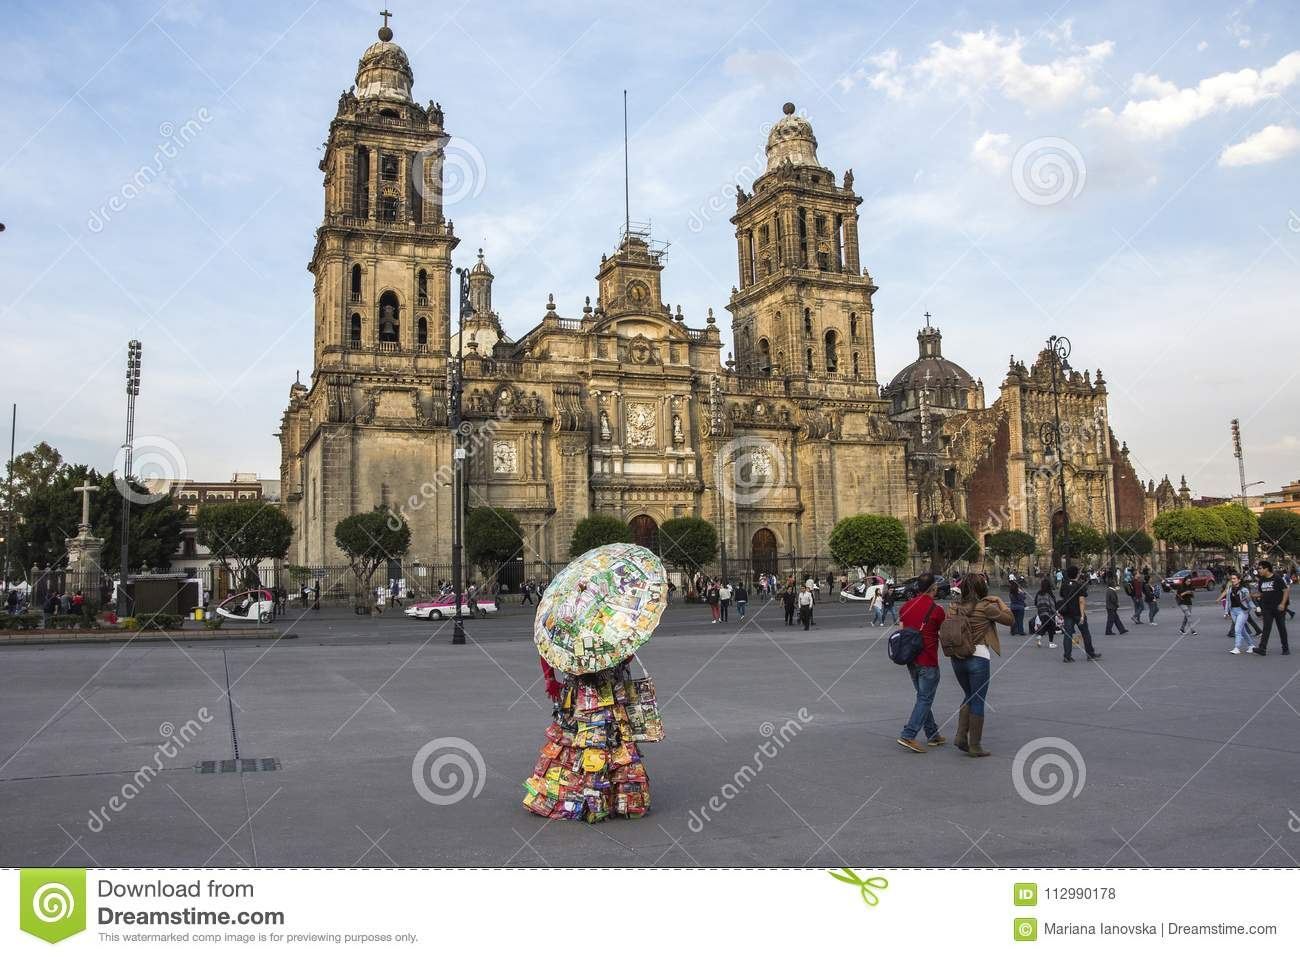 MEXICO CITY - FEB 5, 2017: Constitution Square Zocalo view from the dome of the Metropolitan Cathedral